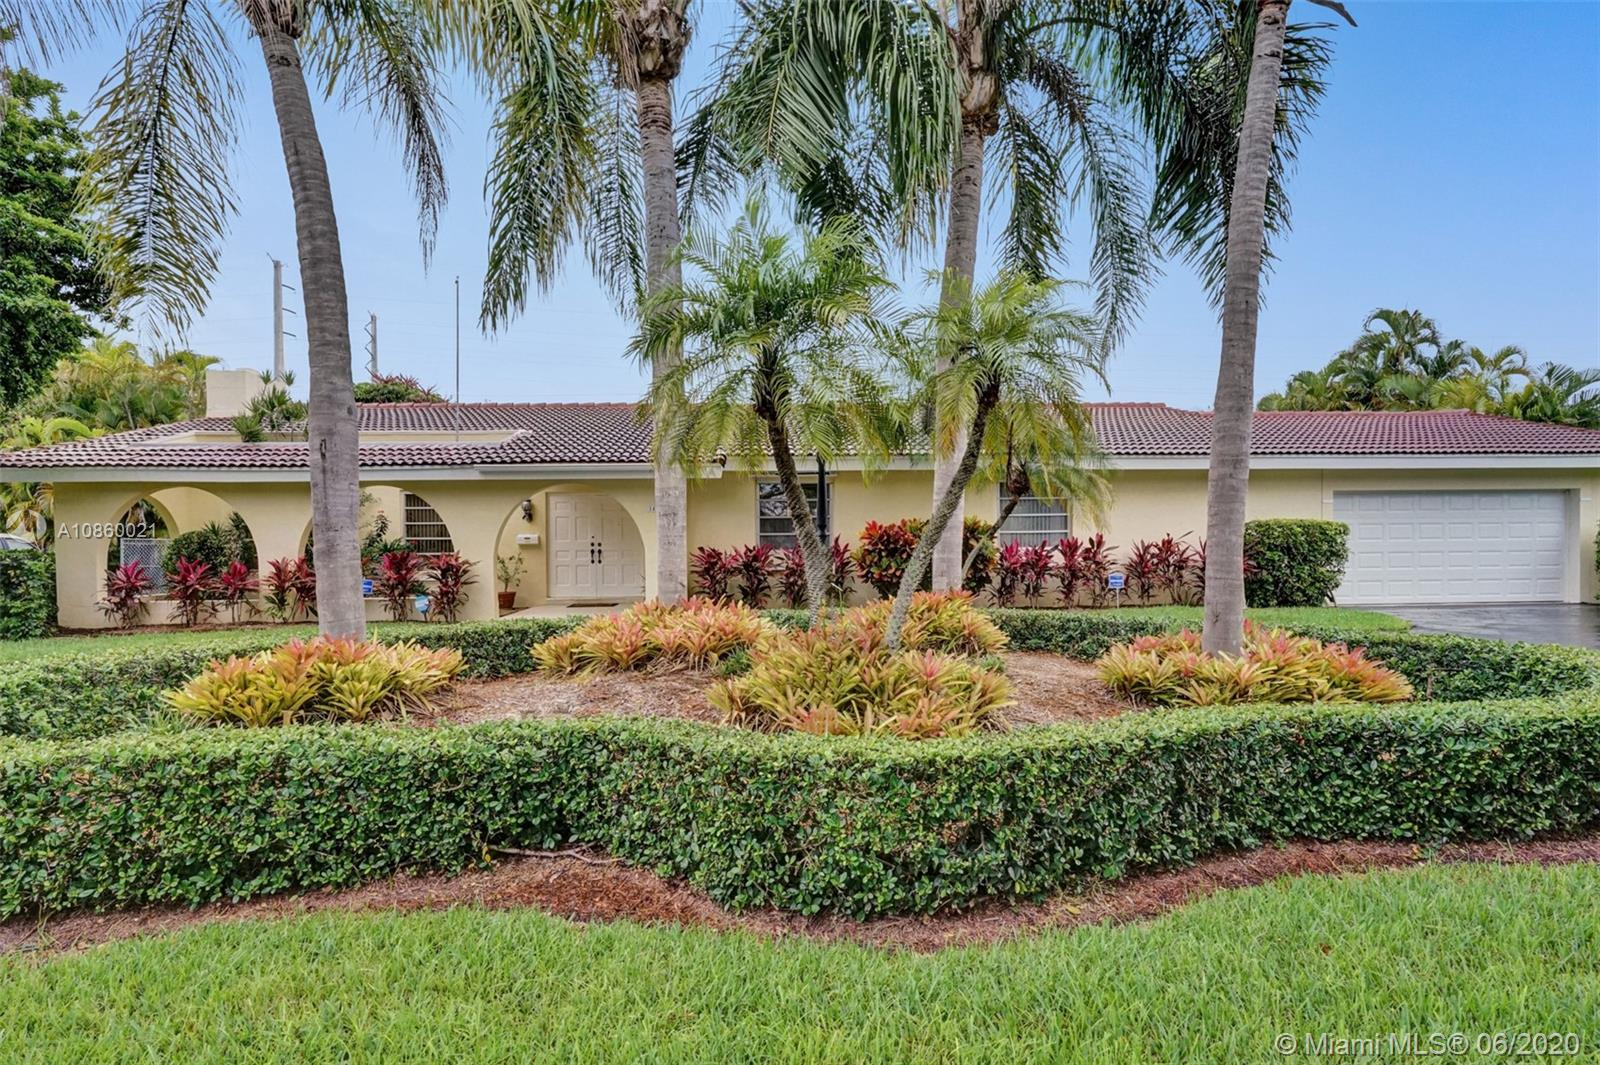 14270 SW 74th Ct, Palmetto Bay, Florida 33158, 4 Bedrooms Bedrooms, ,2 BathroomsBathrooms,Residential,For Sale,14270 SW 74th Ct,A10860021